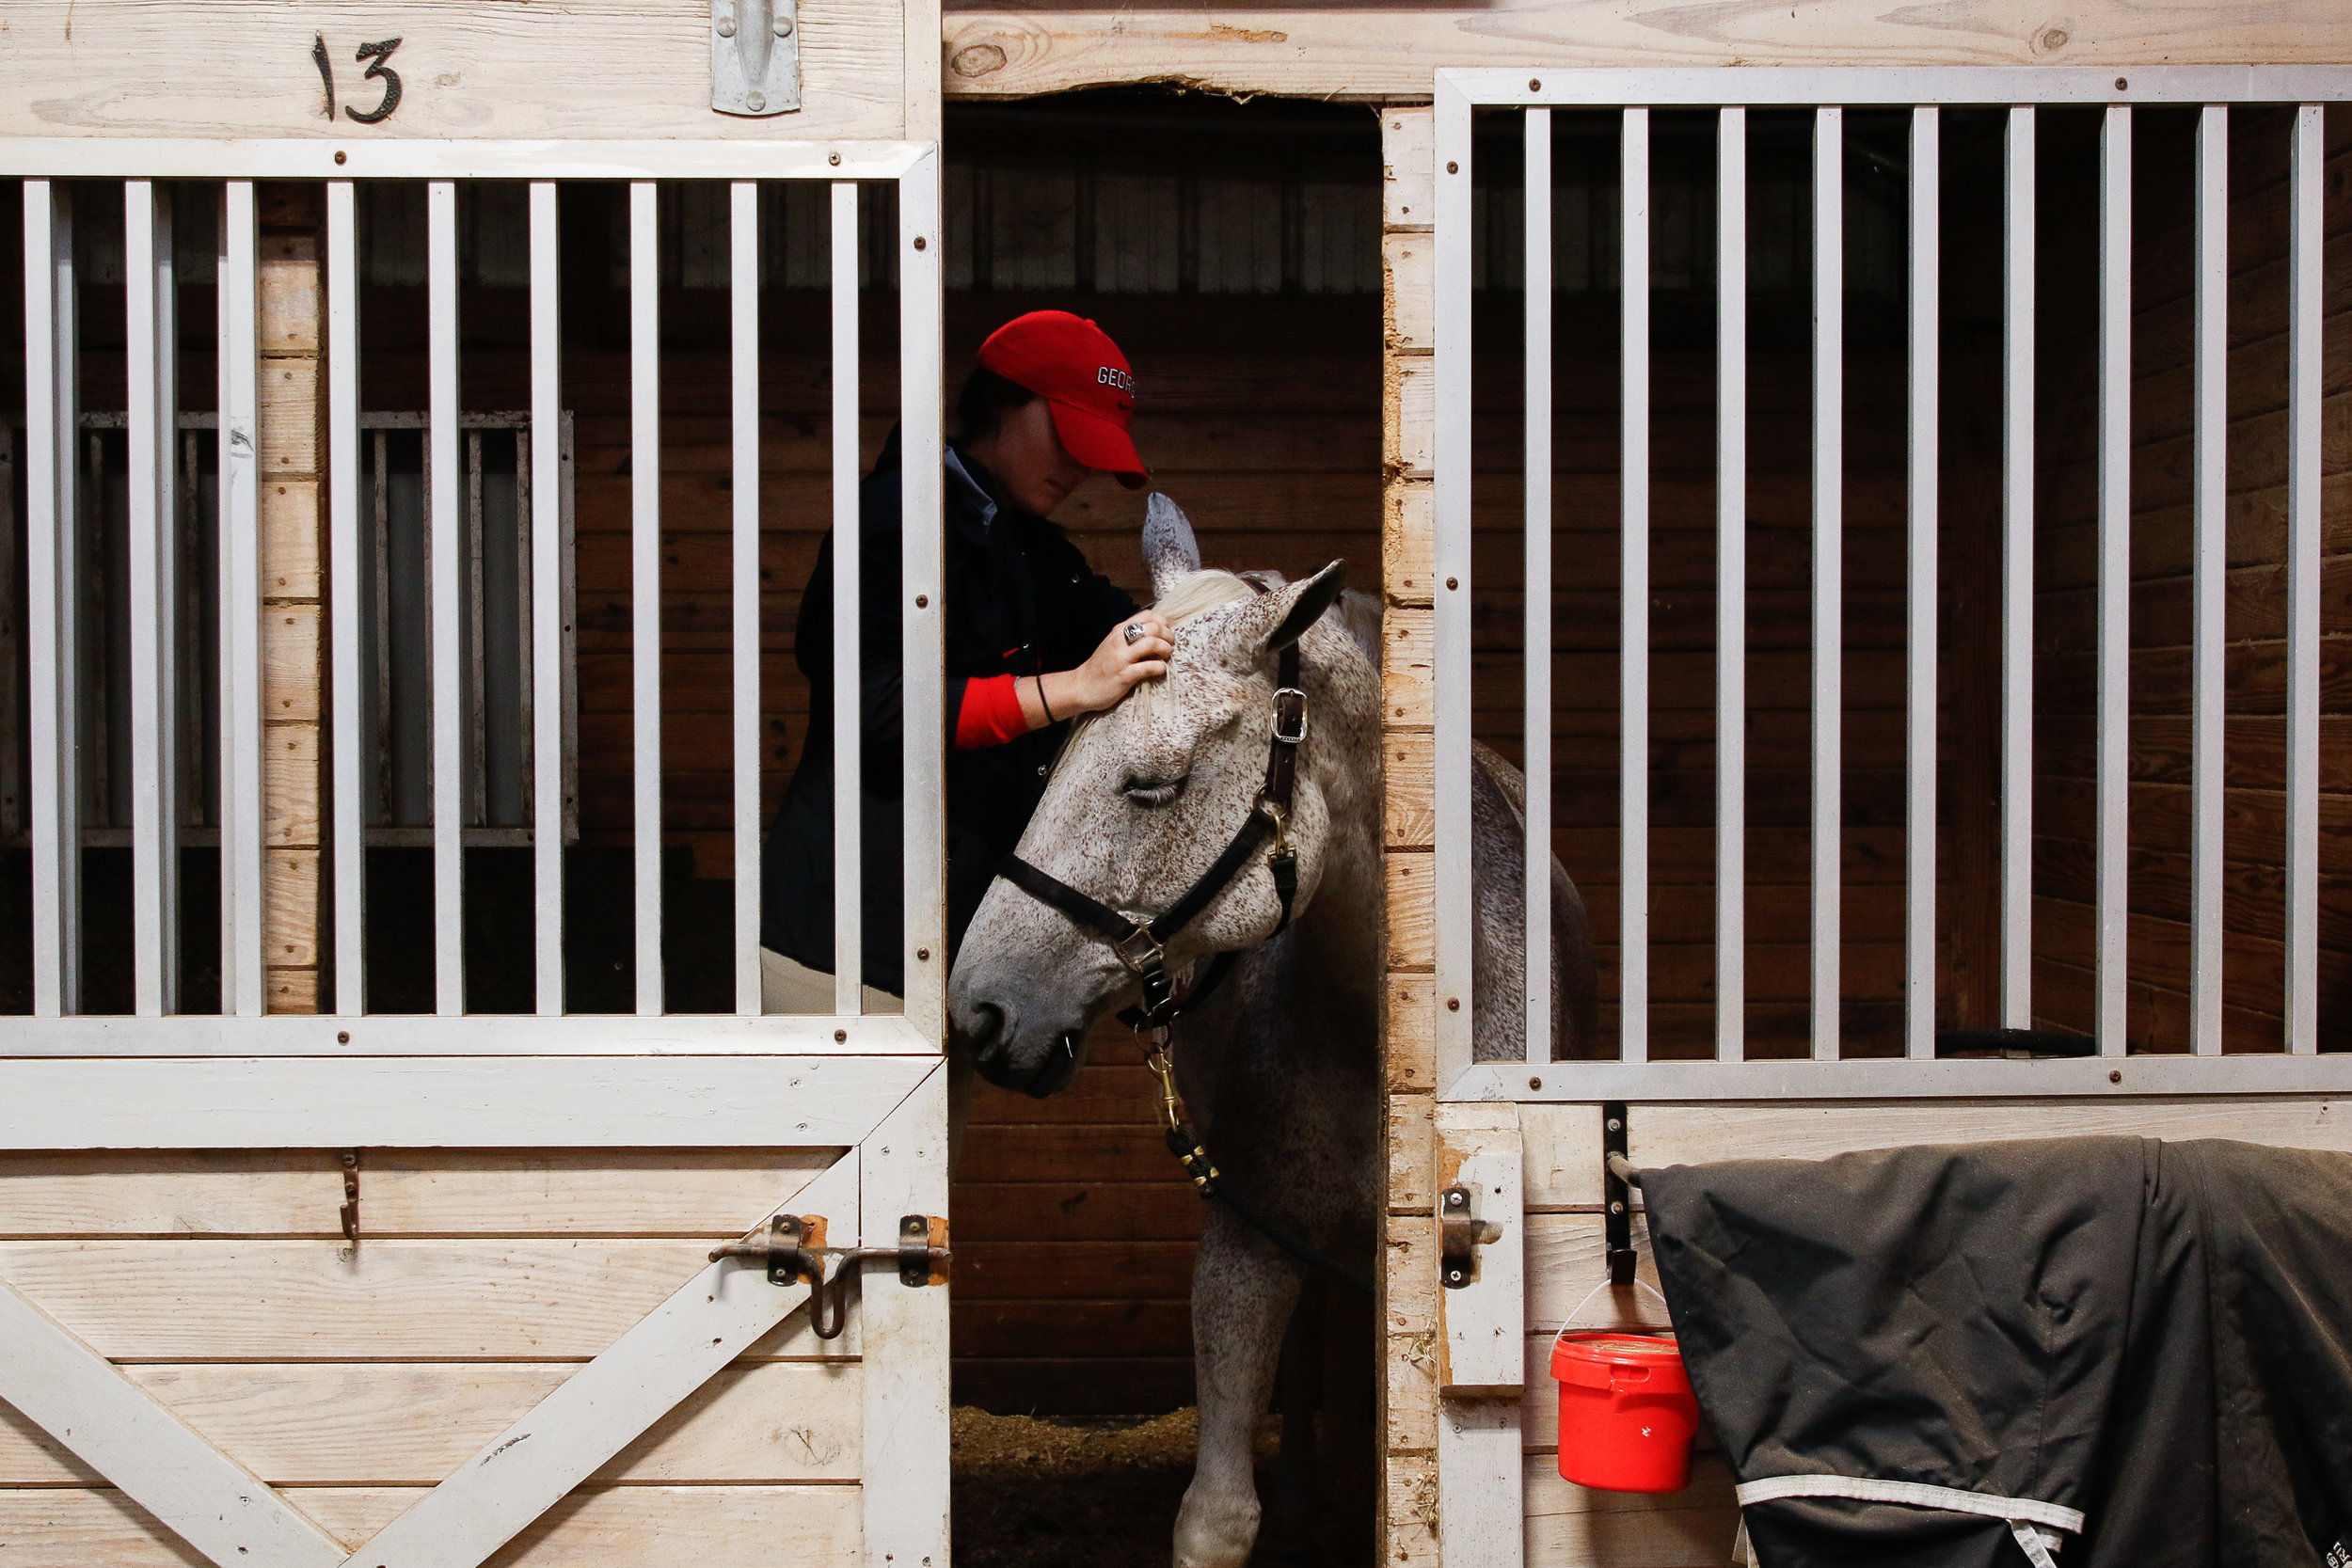 A member of the Georgia equestrian team attempts to calm George the horse while braiding his hair before their competition against Auburn on Friday, November 9, 2018